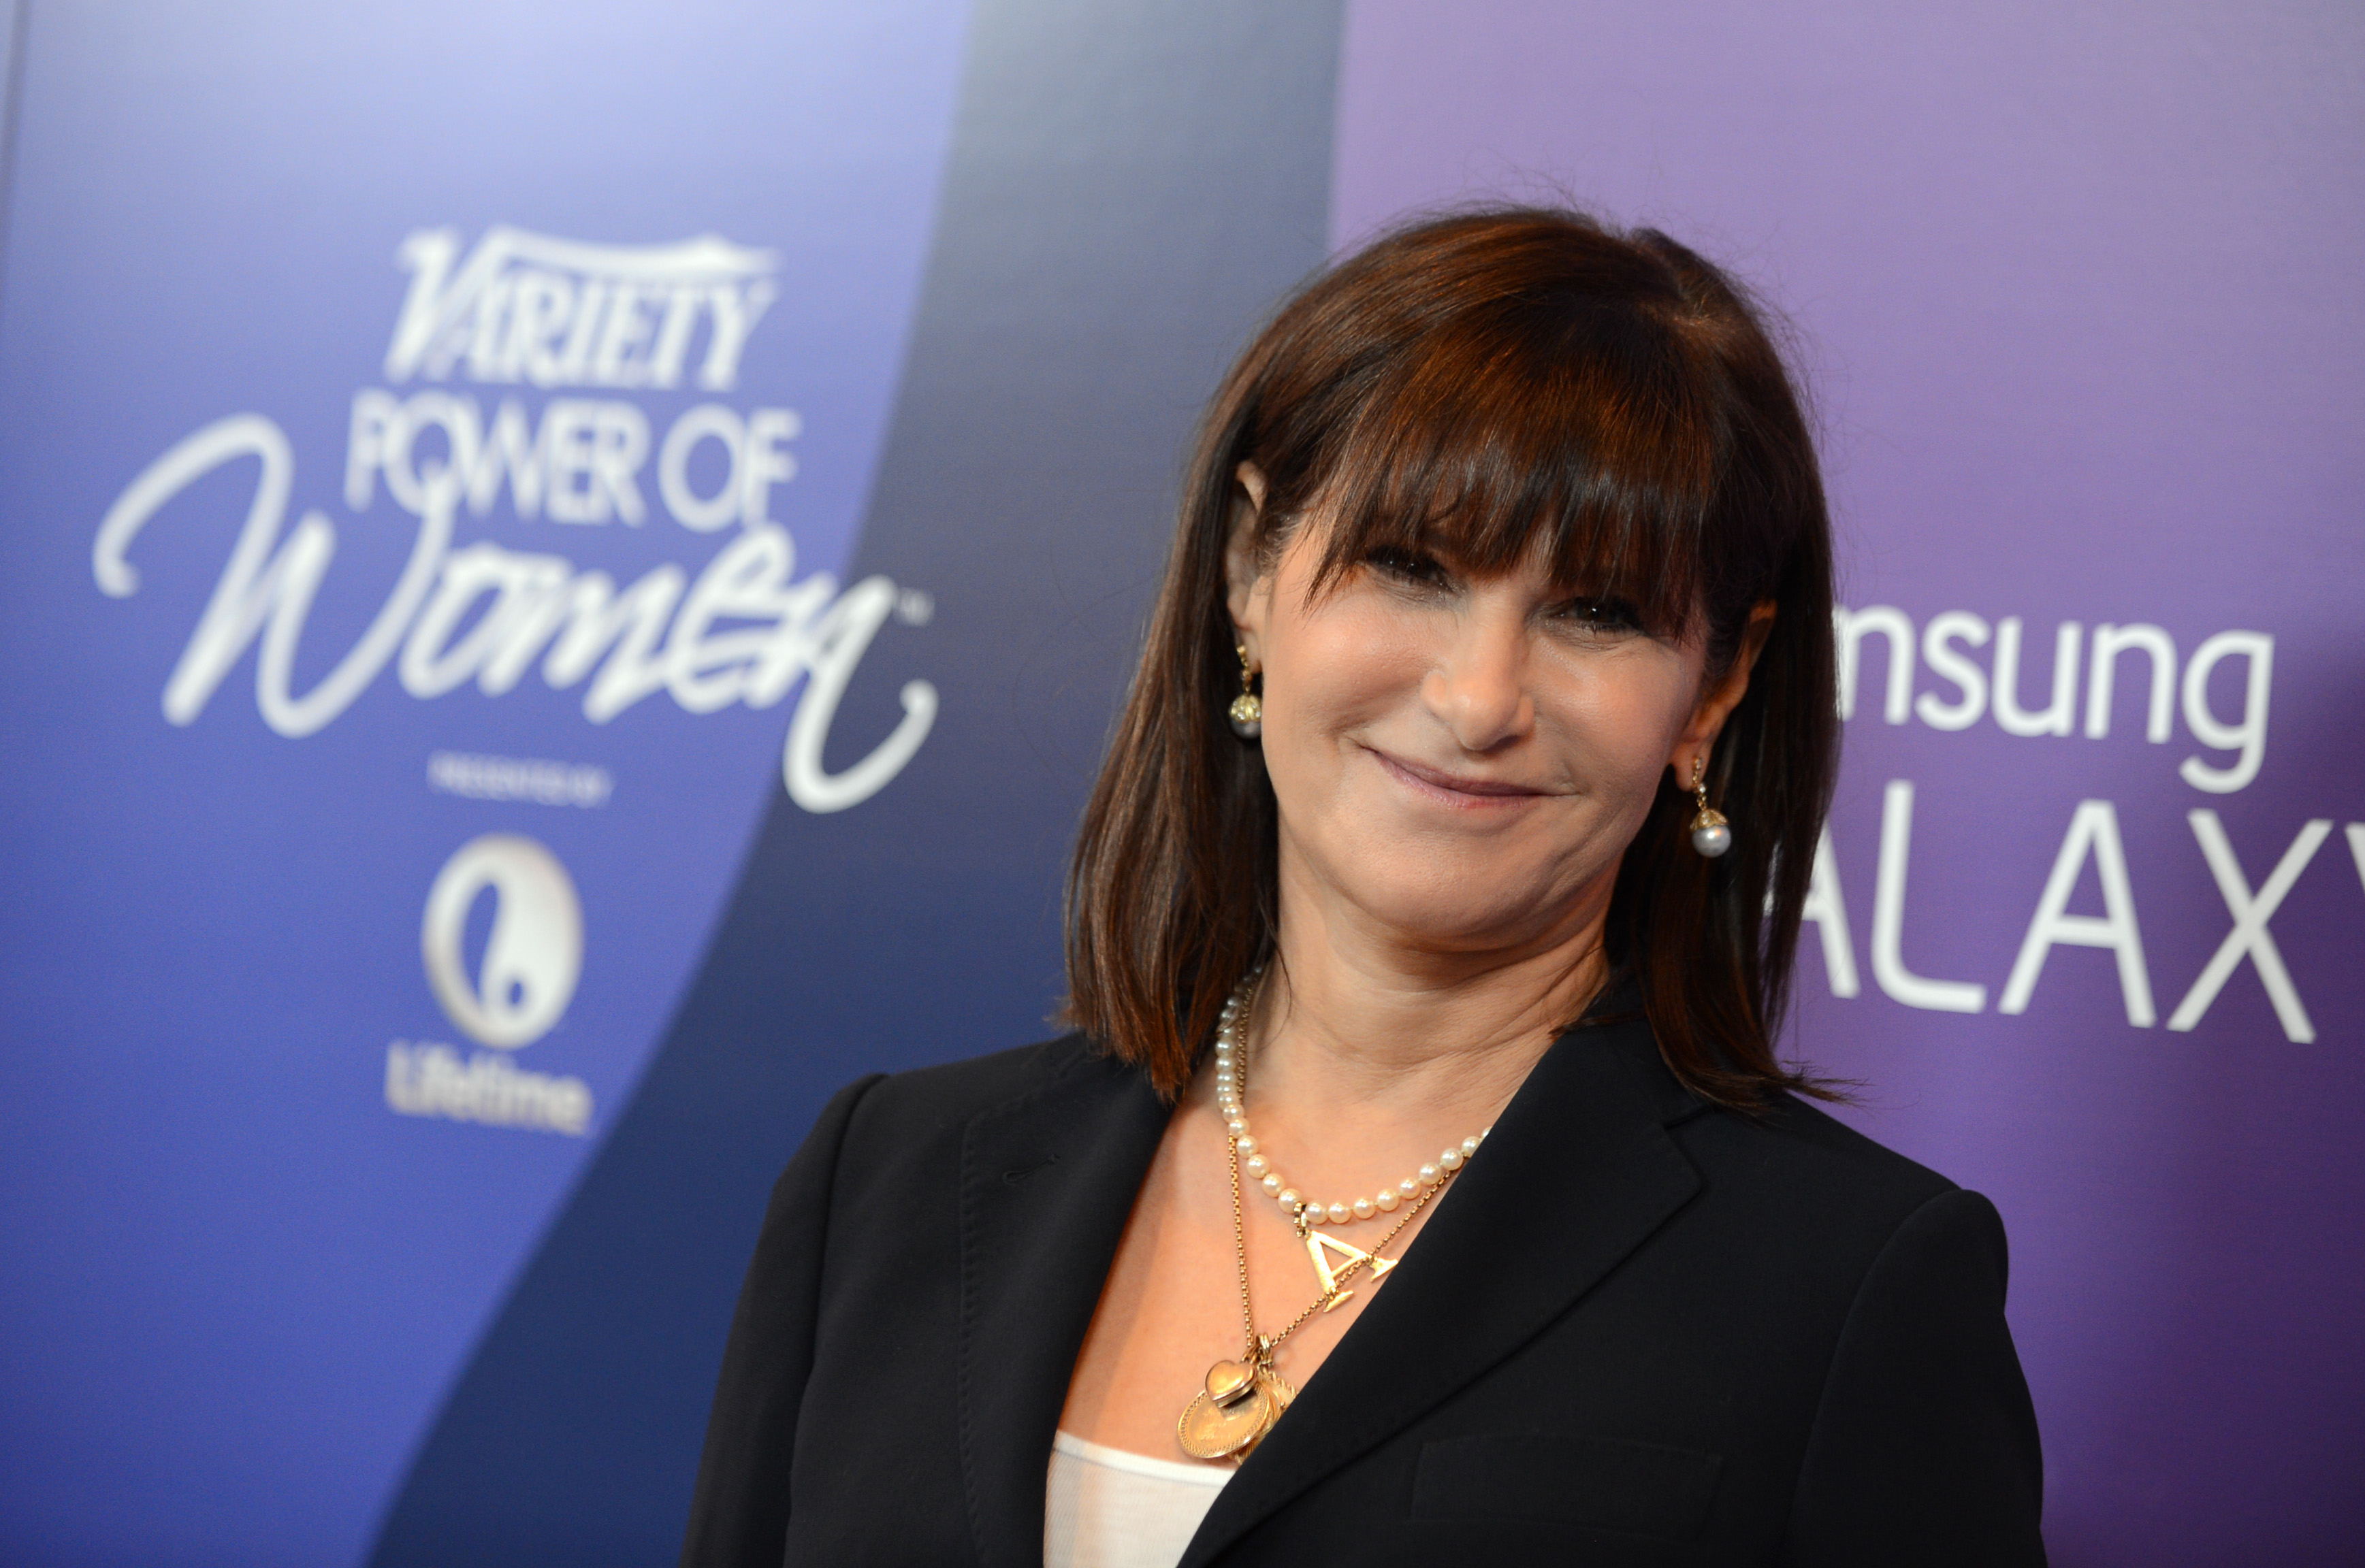 Amy Pascal, Sony Pictures Entertainment co-chairperson, arrives at Variety's 5th Annual Power of Women event at the Beverly Wilshire Hotel in Beverly Hills on Oct. 4, 2013